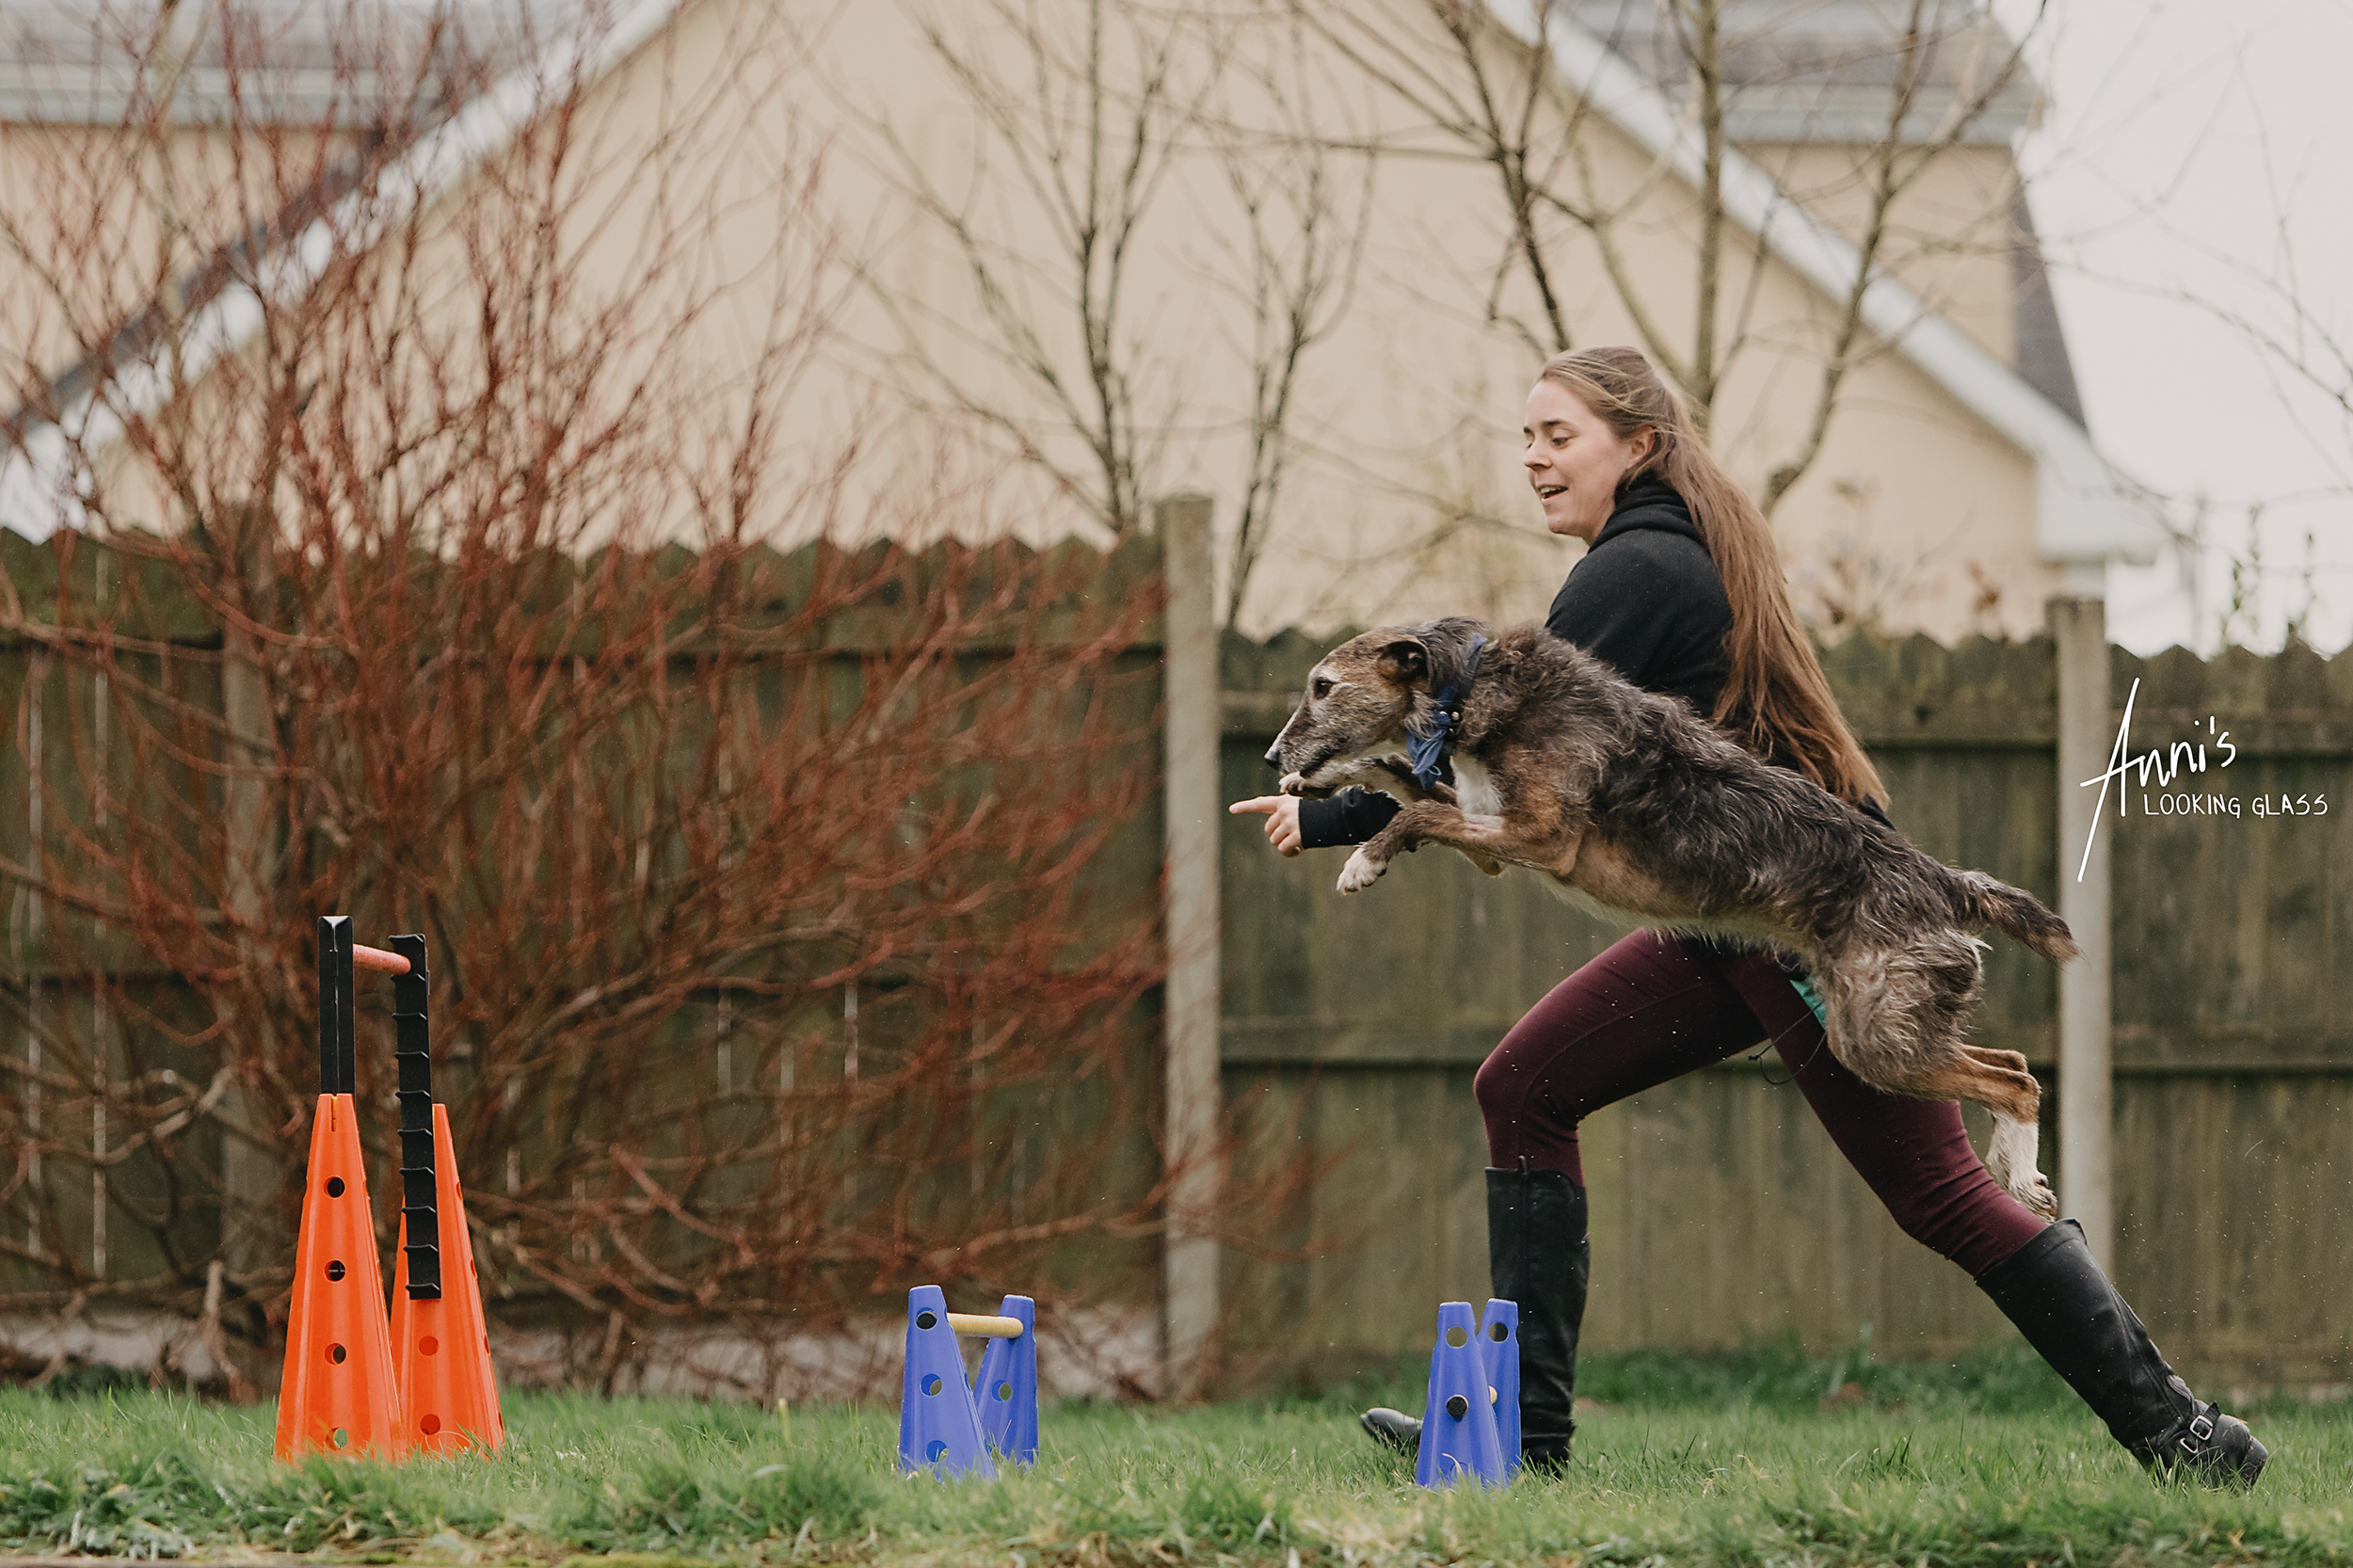 A young woman guides her greyhound across dog agility jumps